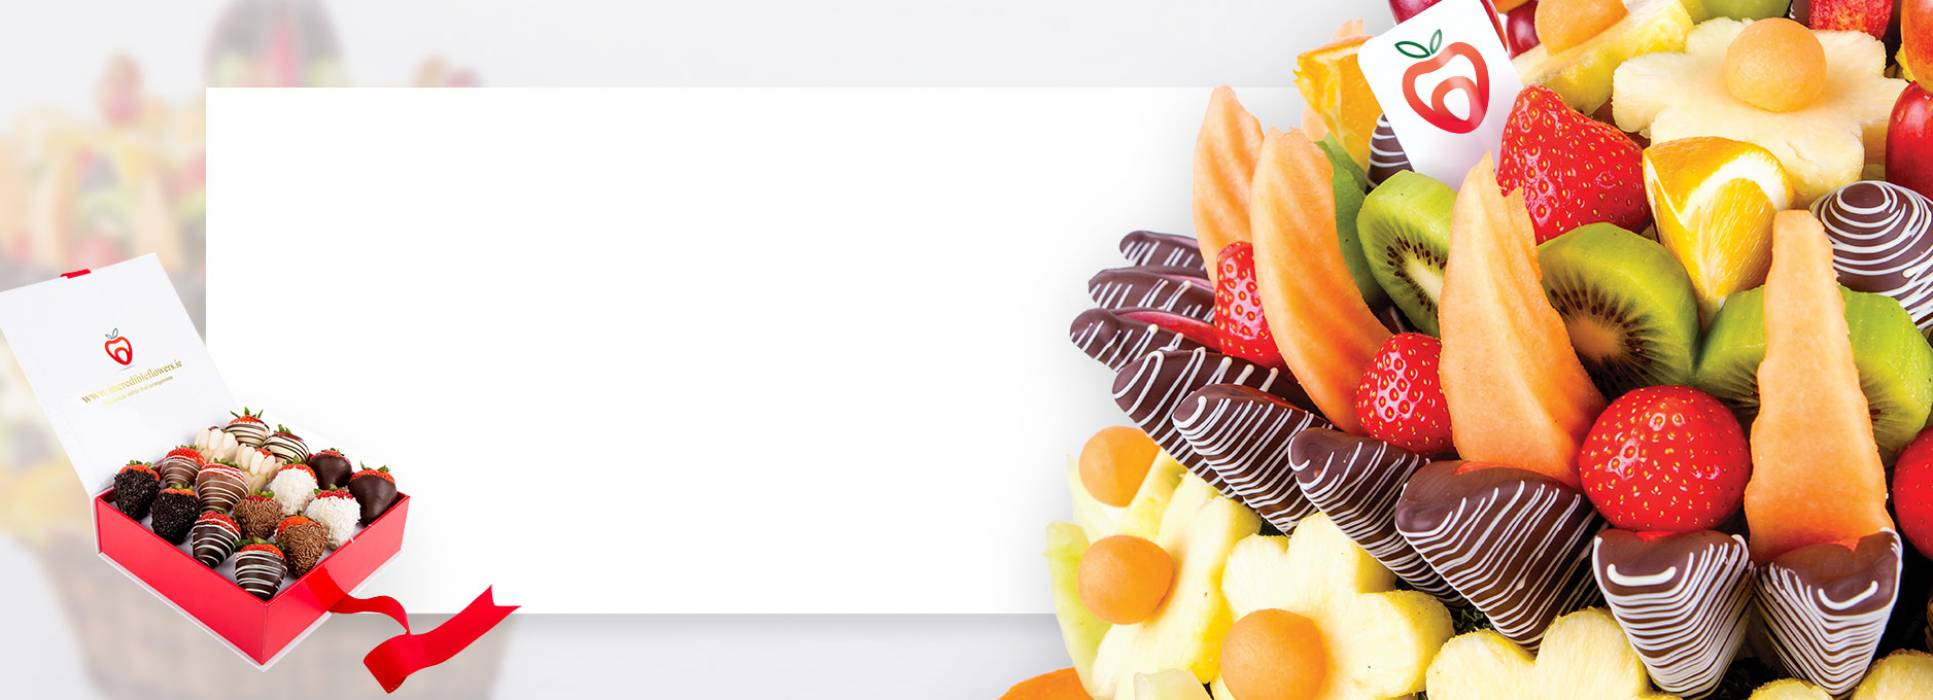 Perfect Easter Gift Basket combines fruit and gourmet chocolate to redefine fruit. Think flowers, delicious foods and great gifts, think Fruit bouquets. Better than gift baskets and fruit baskets these floral creations are a peg up on gift baskets. Order these edible fruit flower arrangements as gifts now.